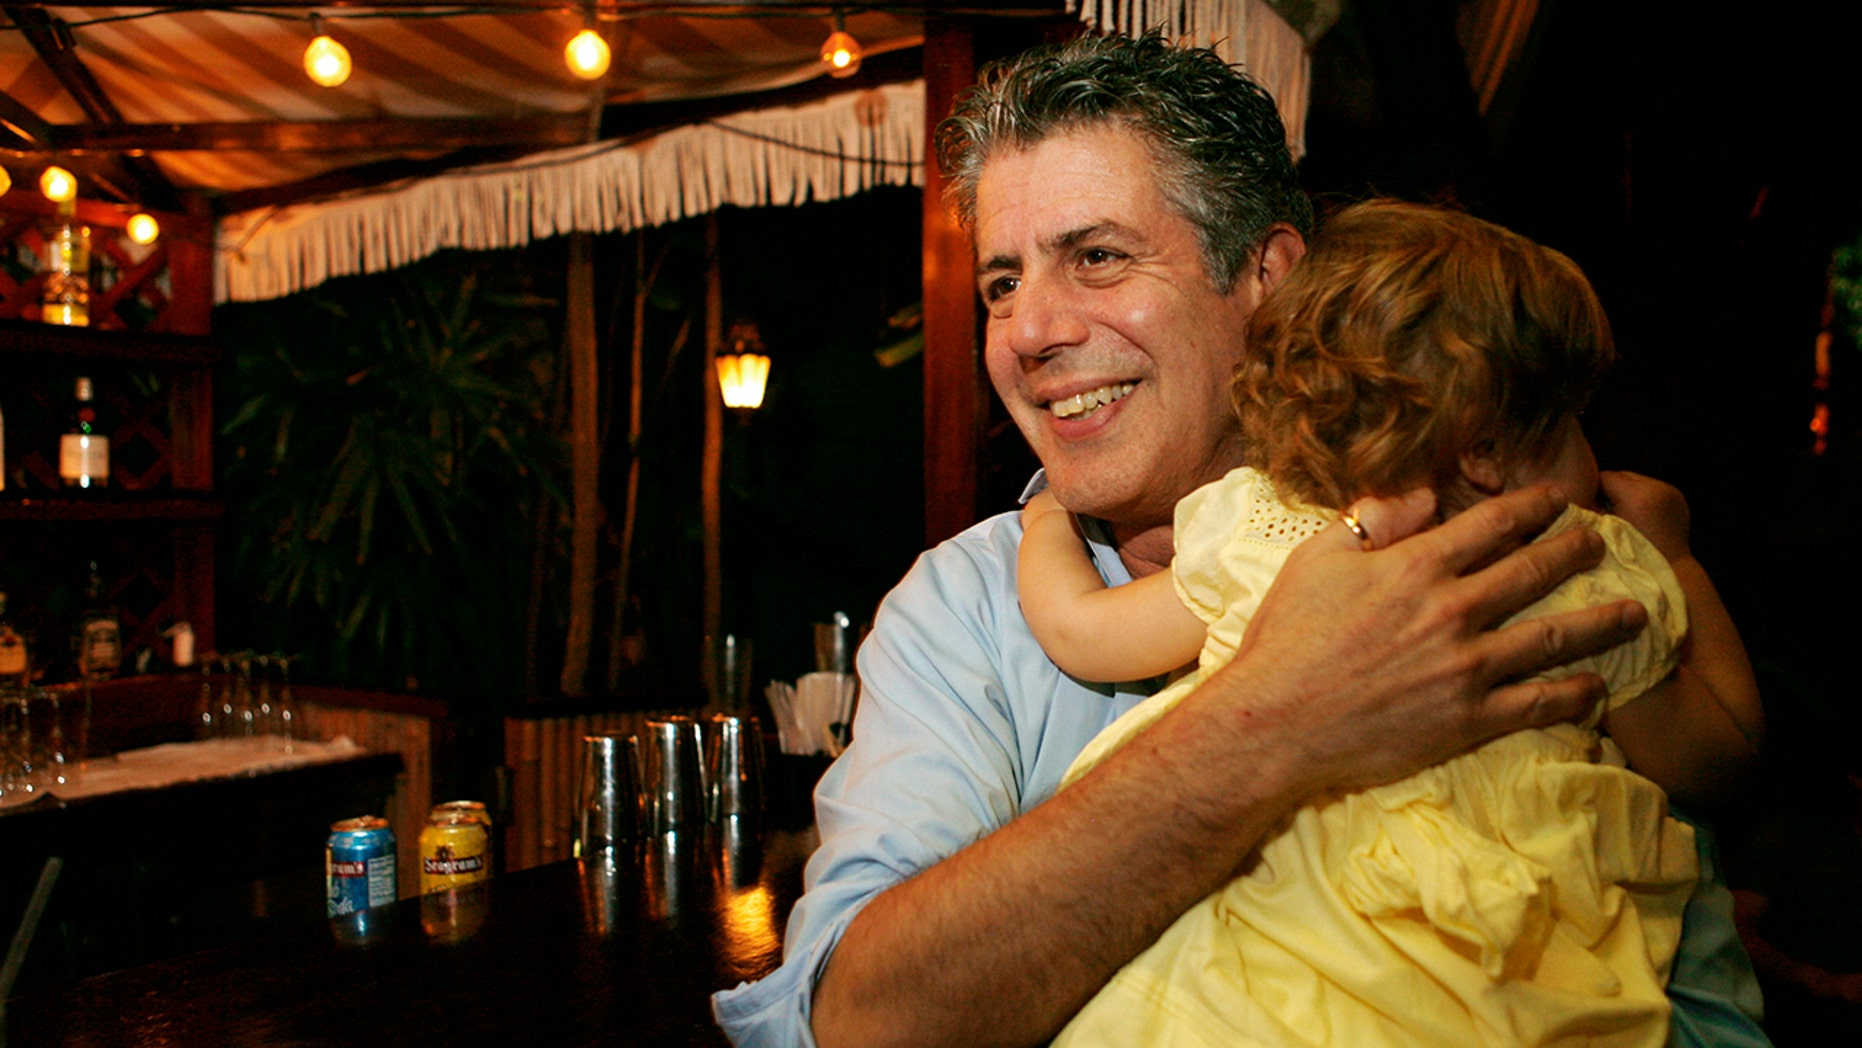 ** FOR USE WITH AP LIFESTYLES ** Chef Anthony Bourdain holds his daughter Ariane in Miami Beach, Wednesday, Nov. 12, 2008. (AP Photo/Lynne Sladky)